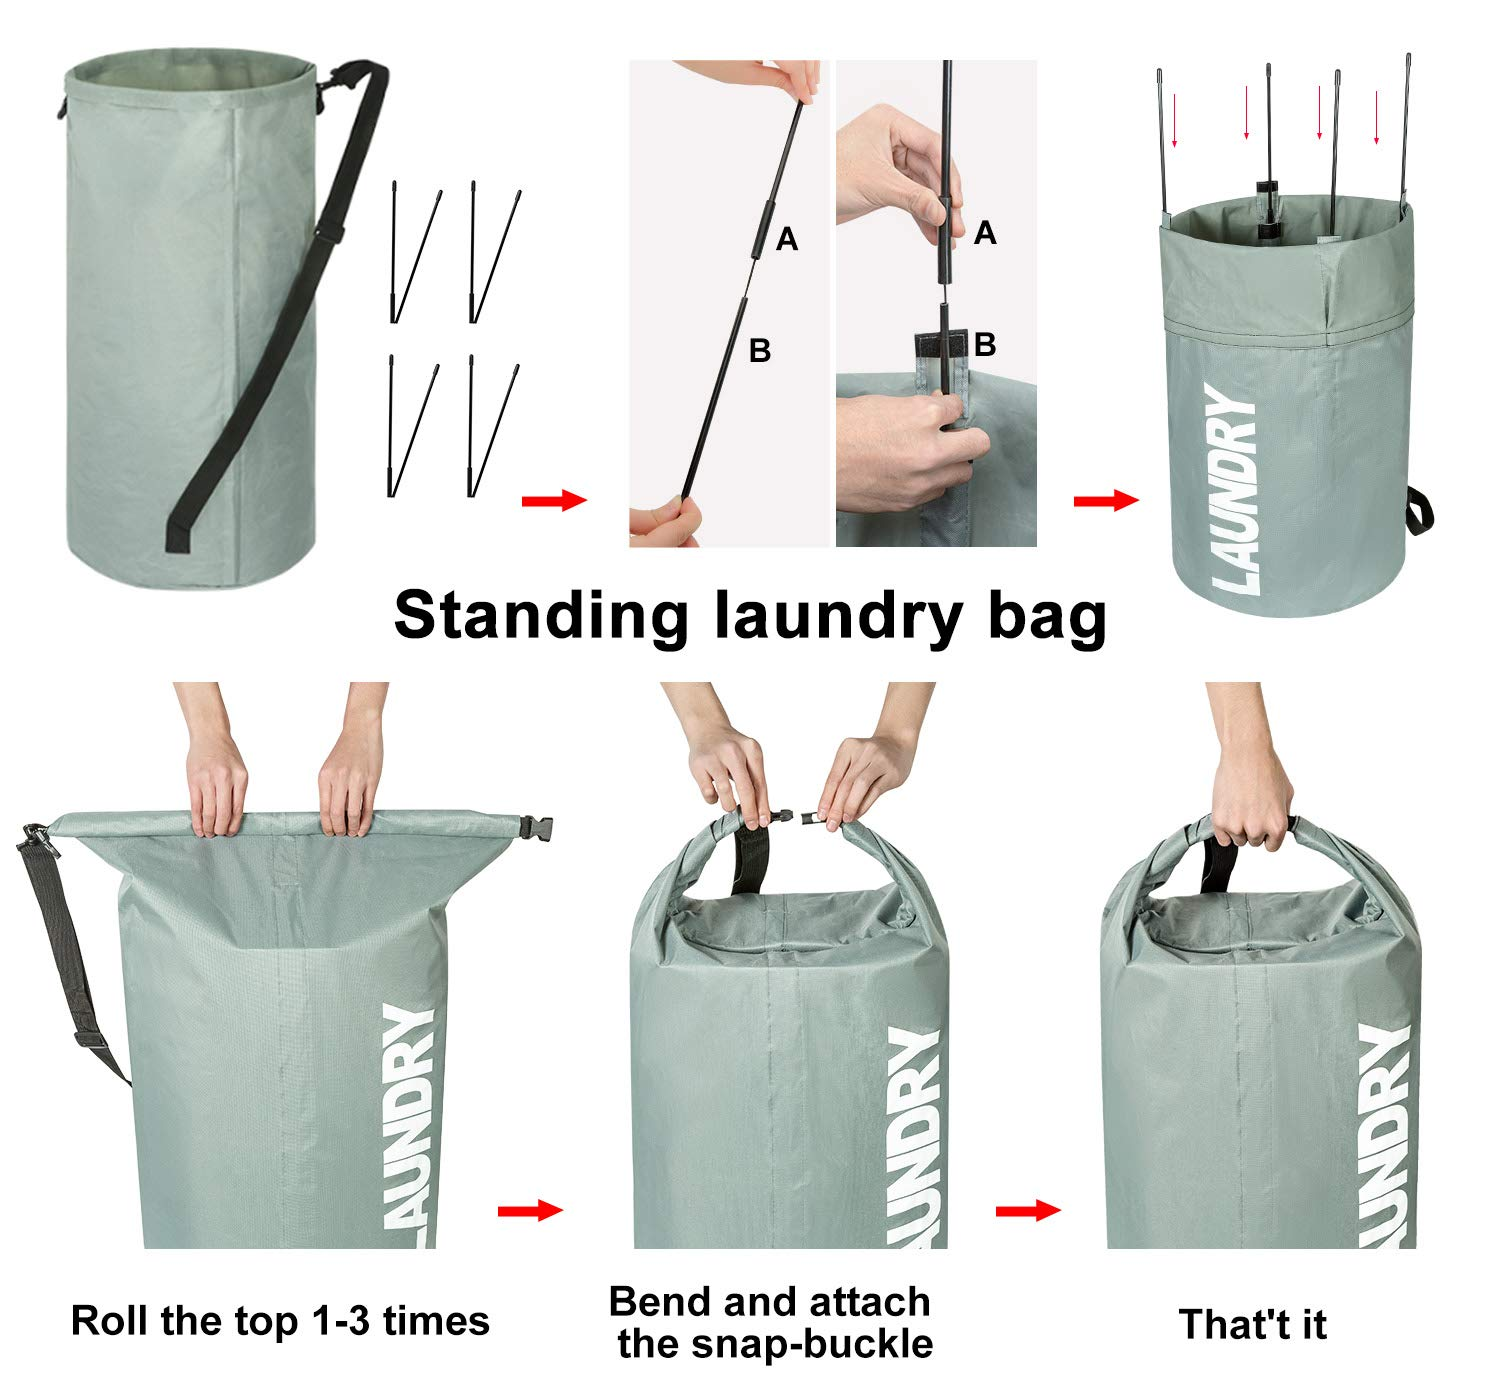 ZERO JET LAG Large Collapsible Laundry Hamper Tall Laundry Basket Round Dirty Clothes Hamper Foldable Waterproof Bag Standing Laundry Bin Heavy Duty Laundry Liners (Gray)